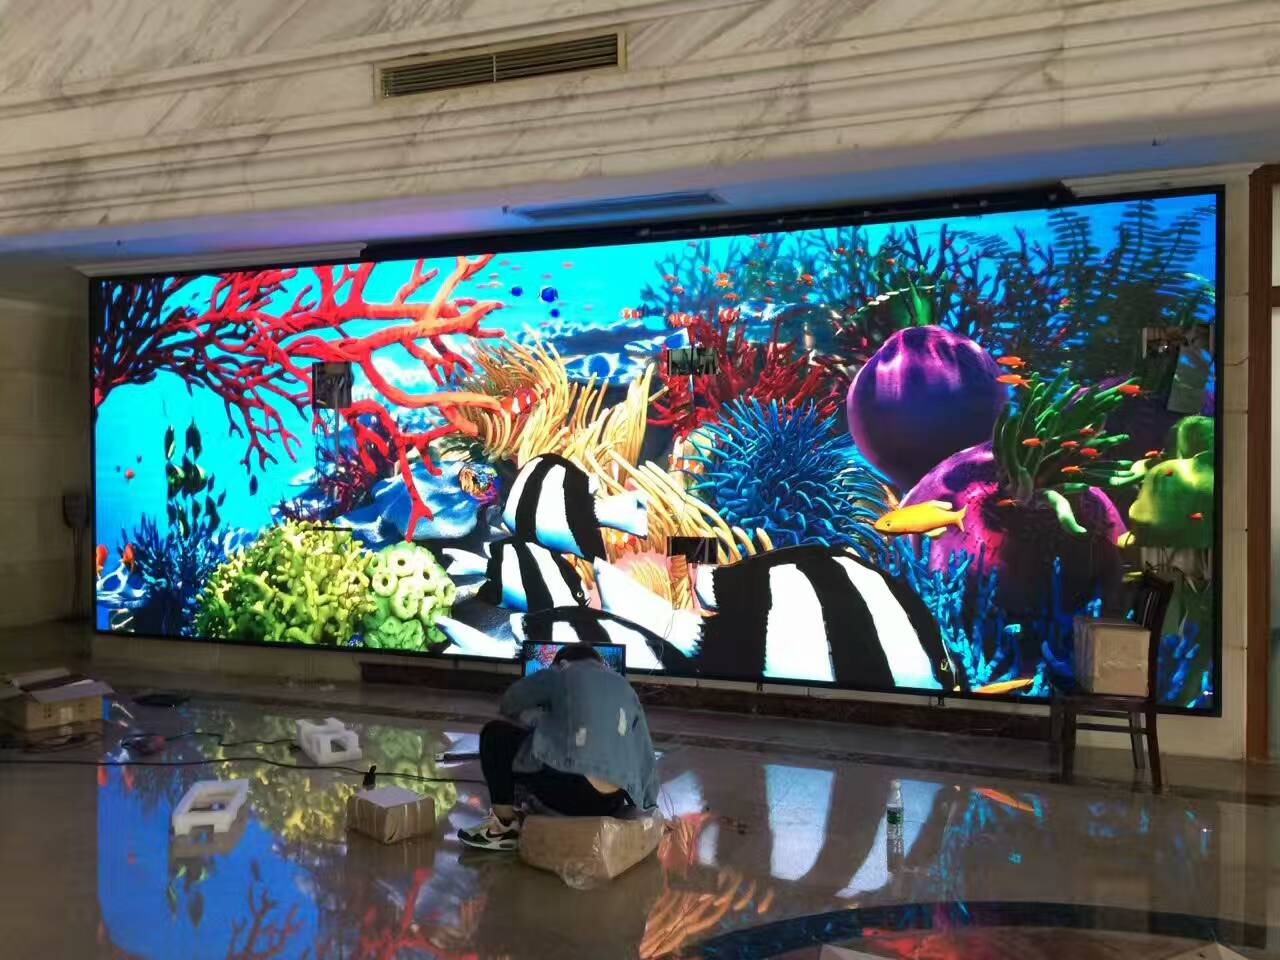 P2.5 HD indoor LED full color display is installed